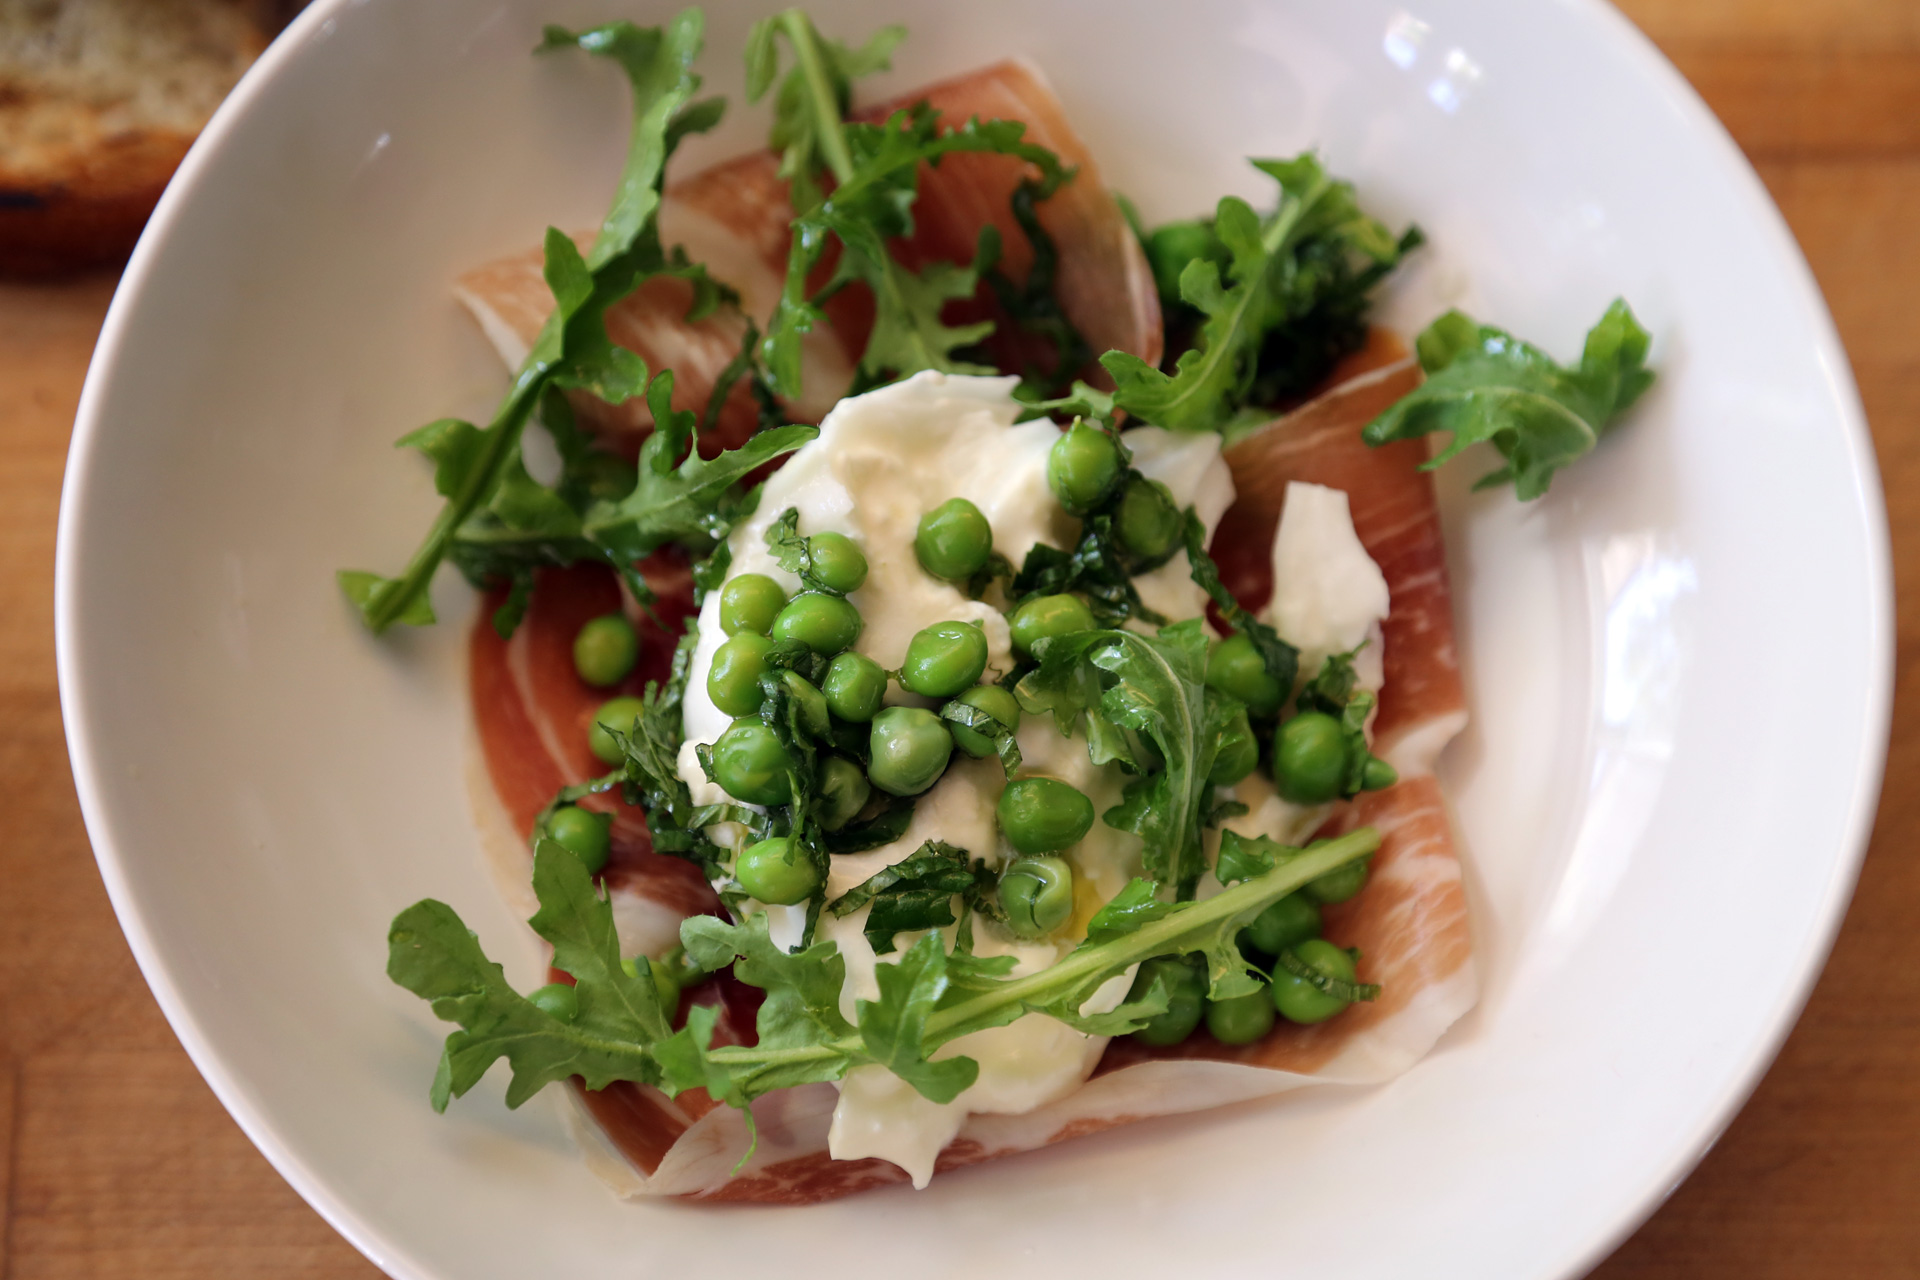 Salad of Burrata, Peas, Mint, Speck and Arugula